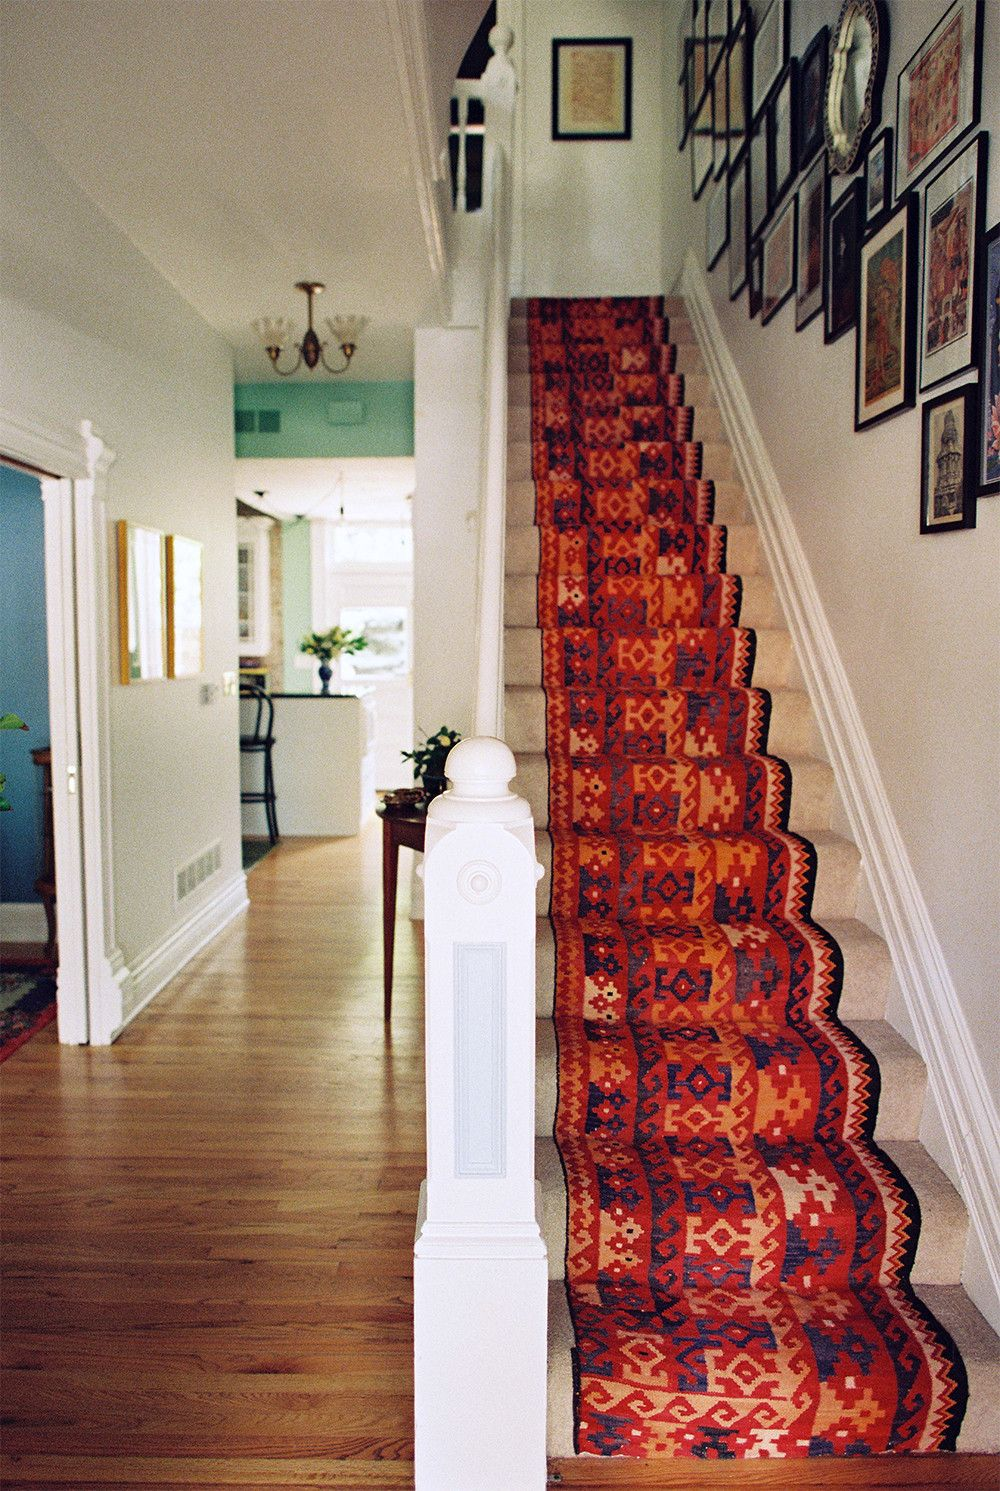 Awesome Runner Over Bland Carpet. A Victorian Home With Countless Treasures  In Denver, CO